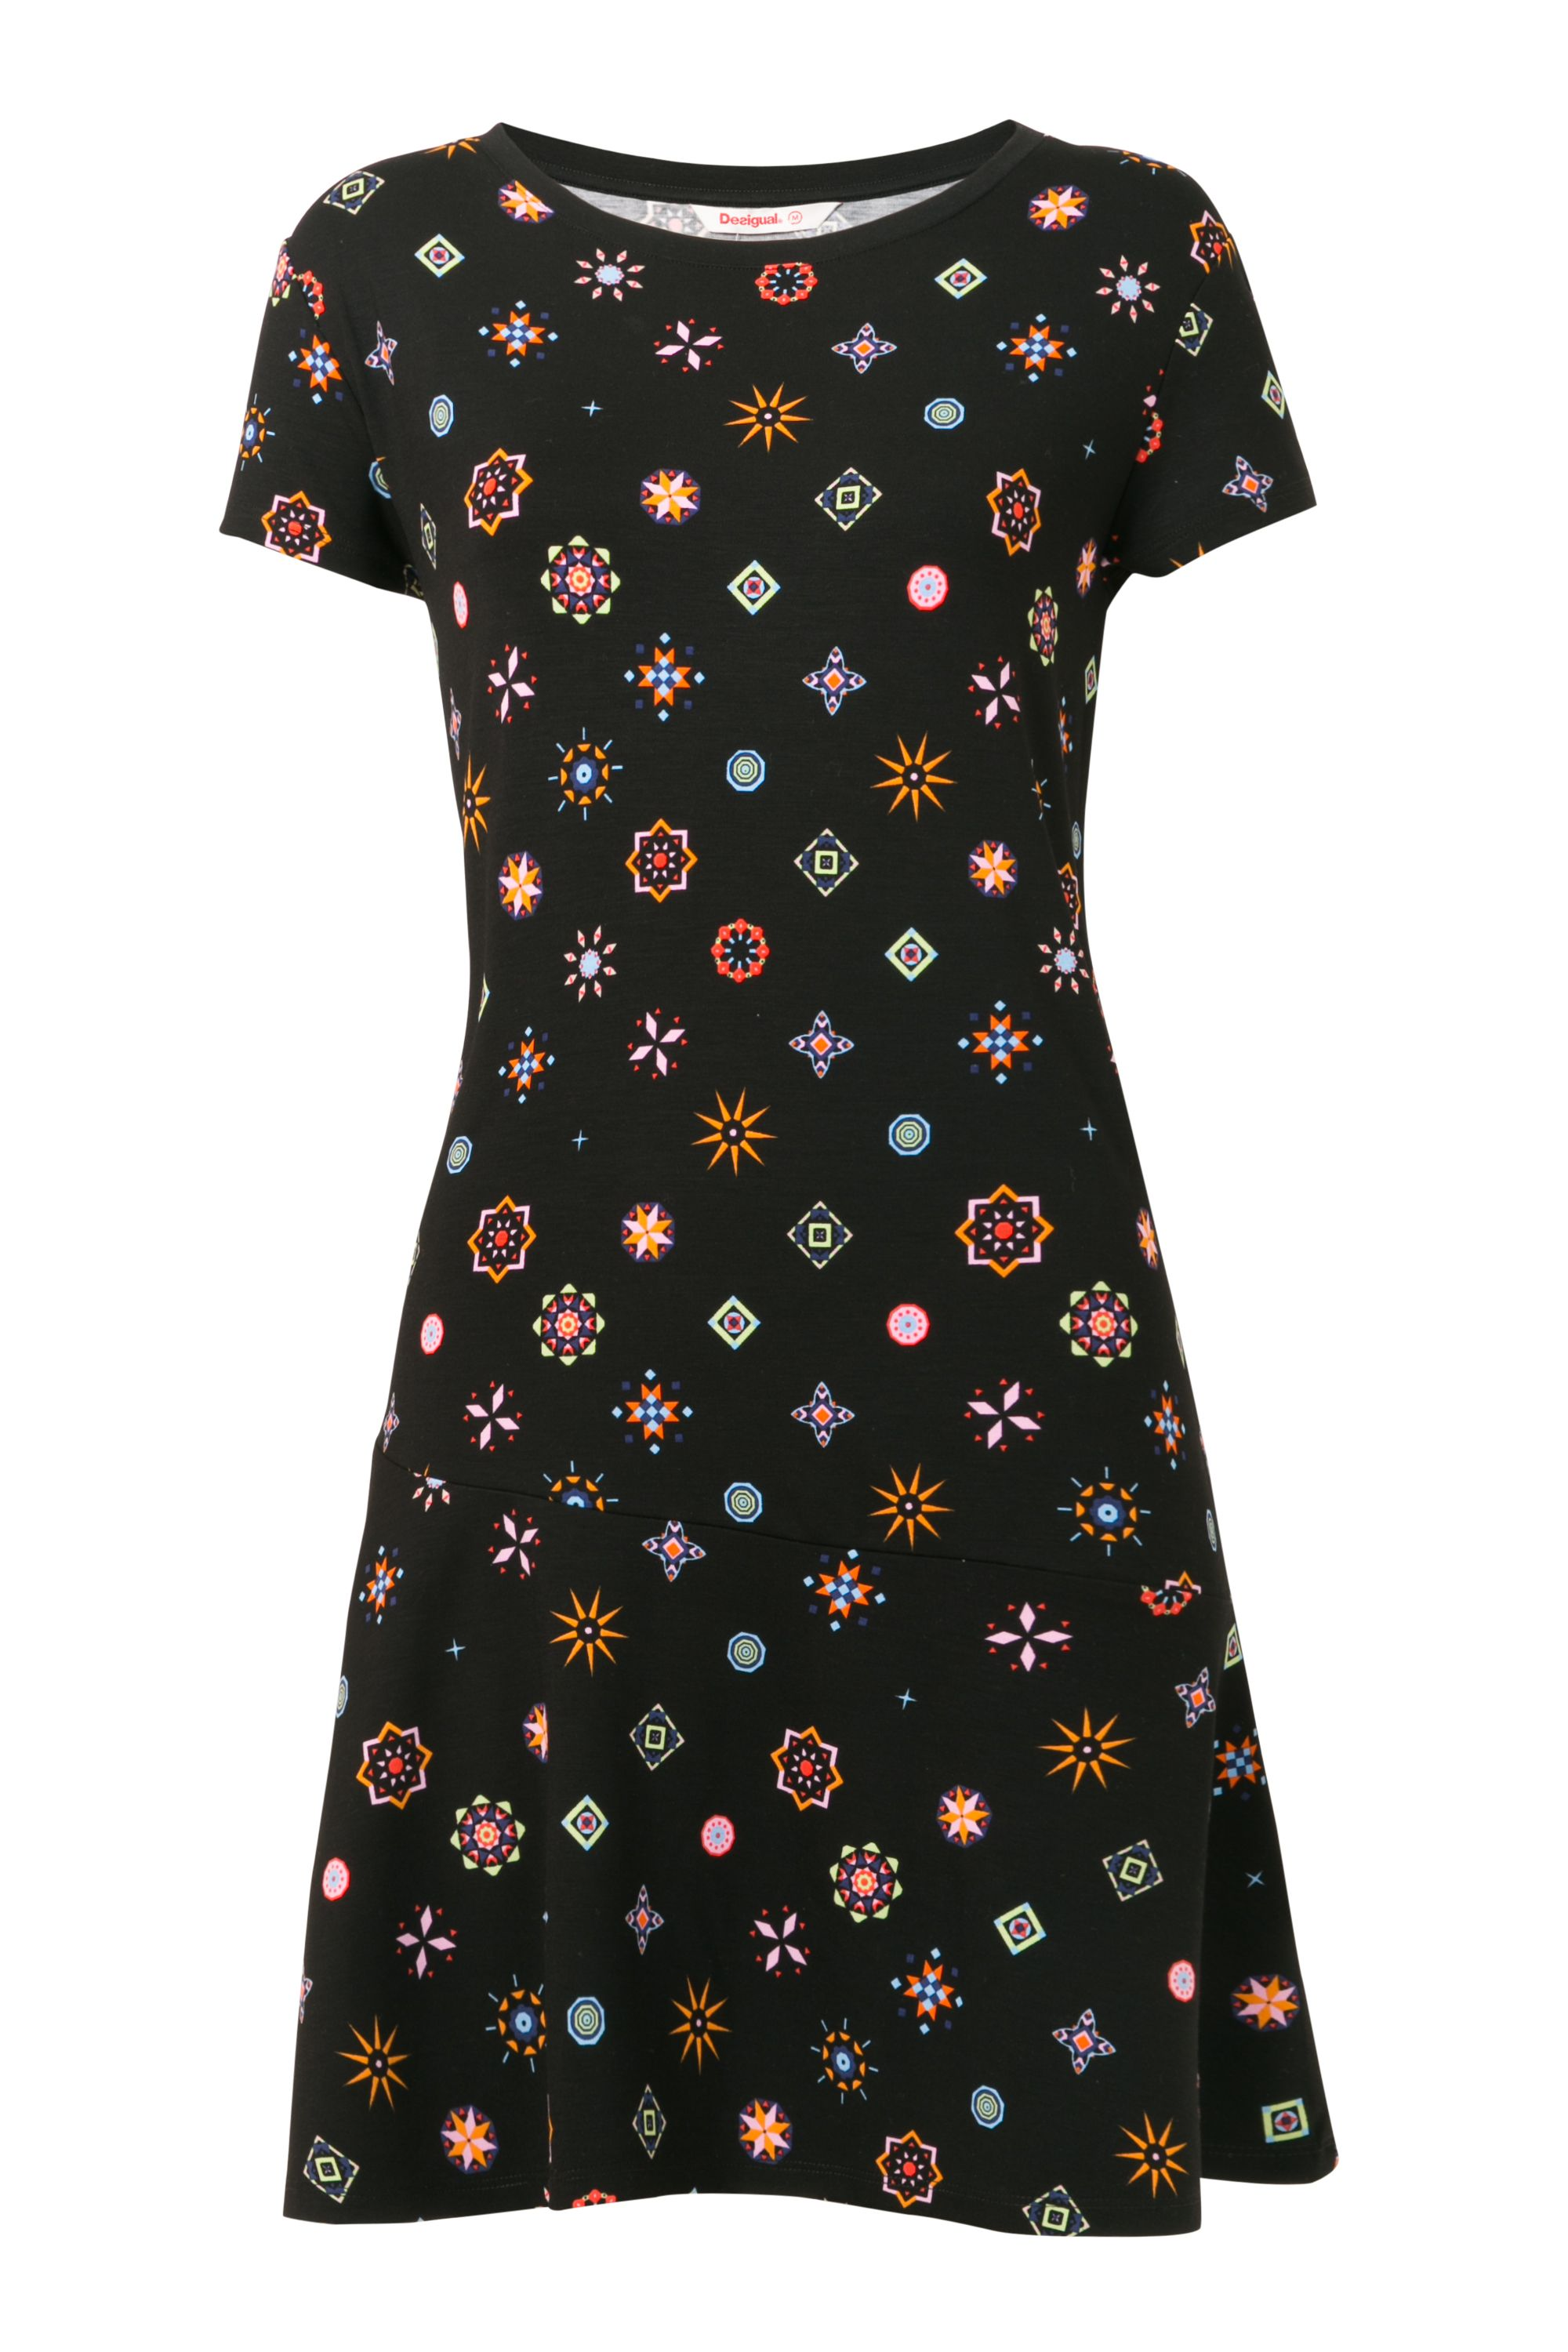 Desigual Dress Eston, Black